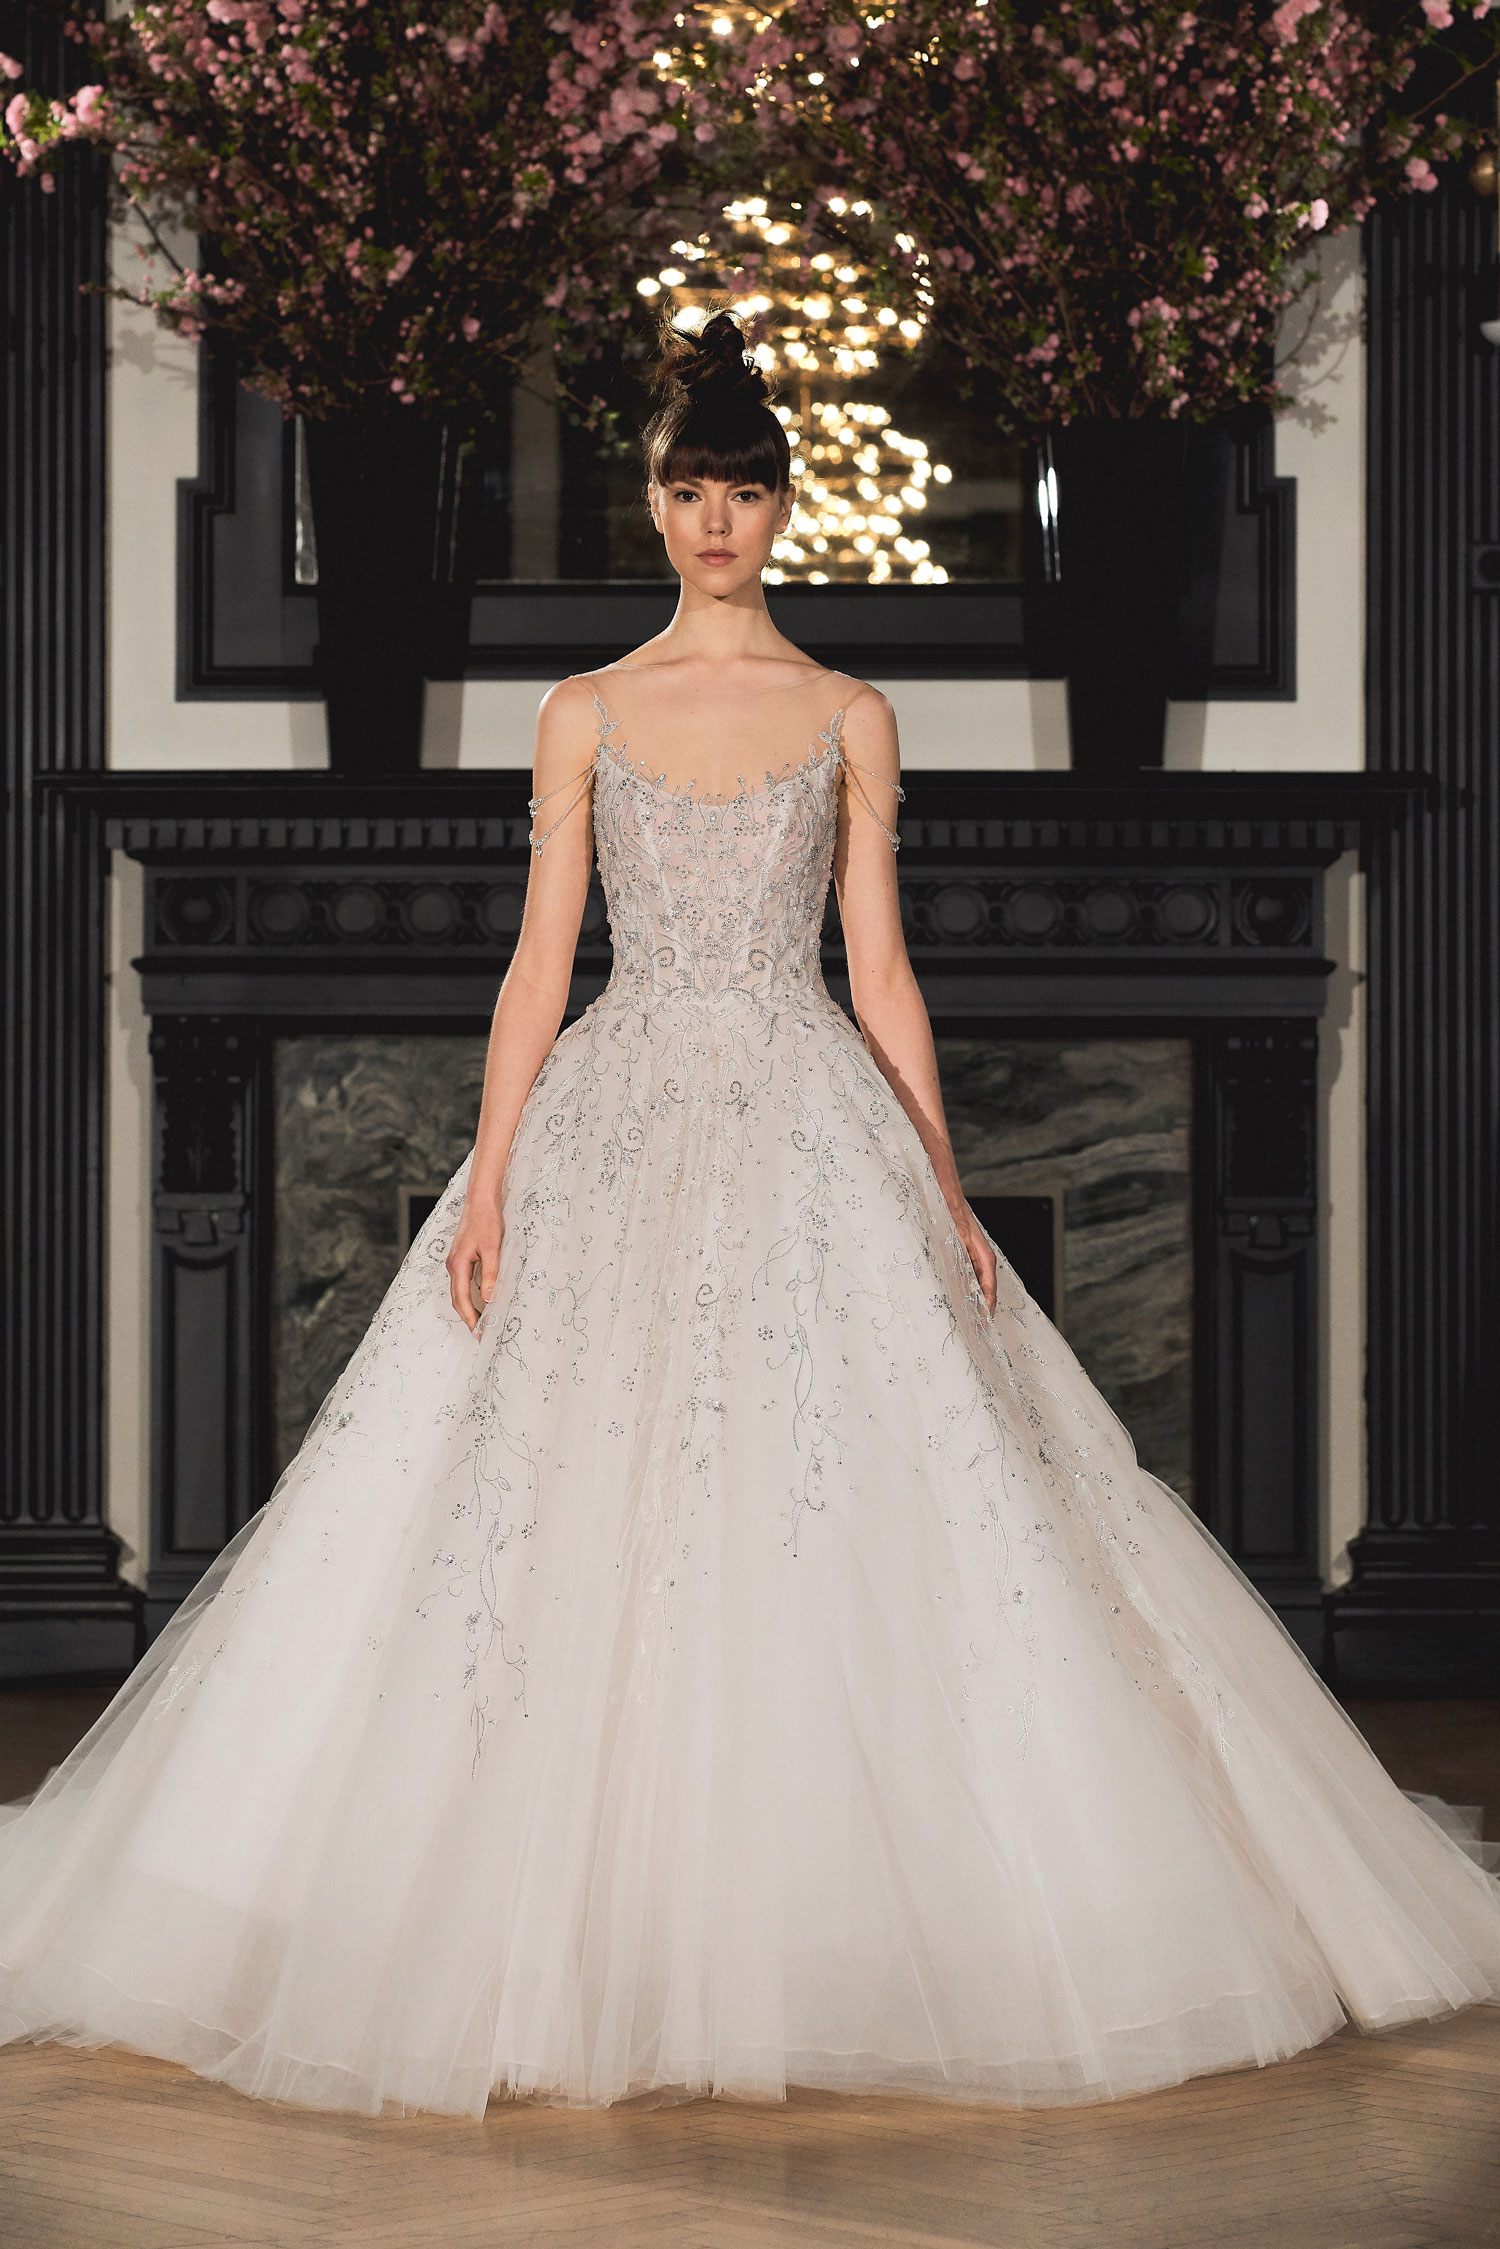 Ballerina style Ines Di Santo embellished ball gown royal wedding dress inspiration